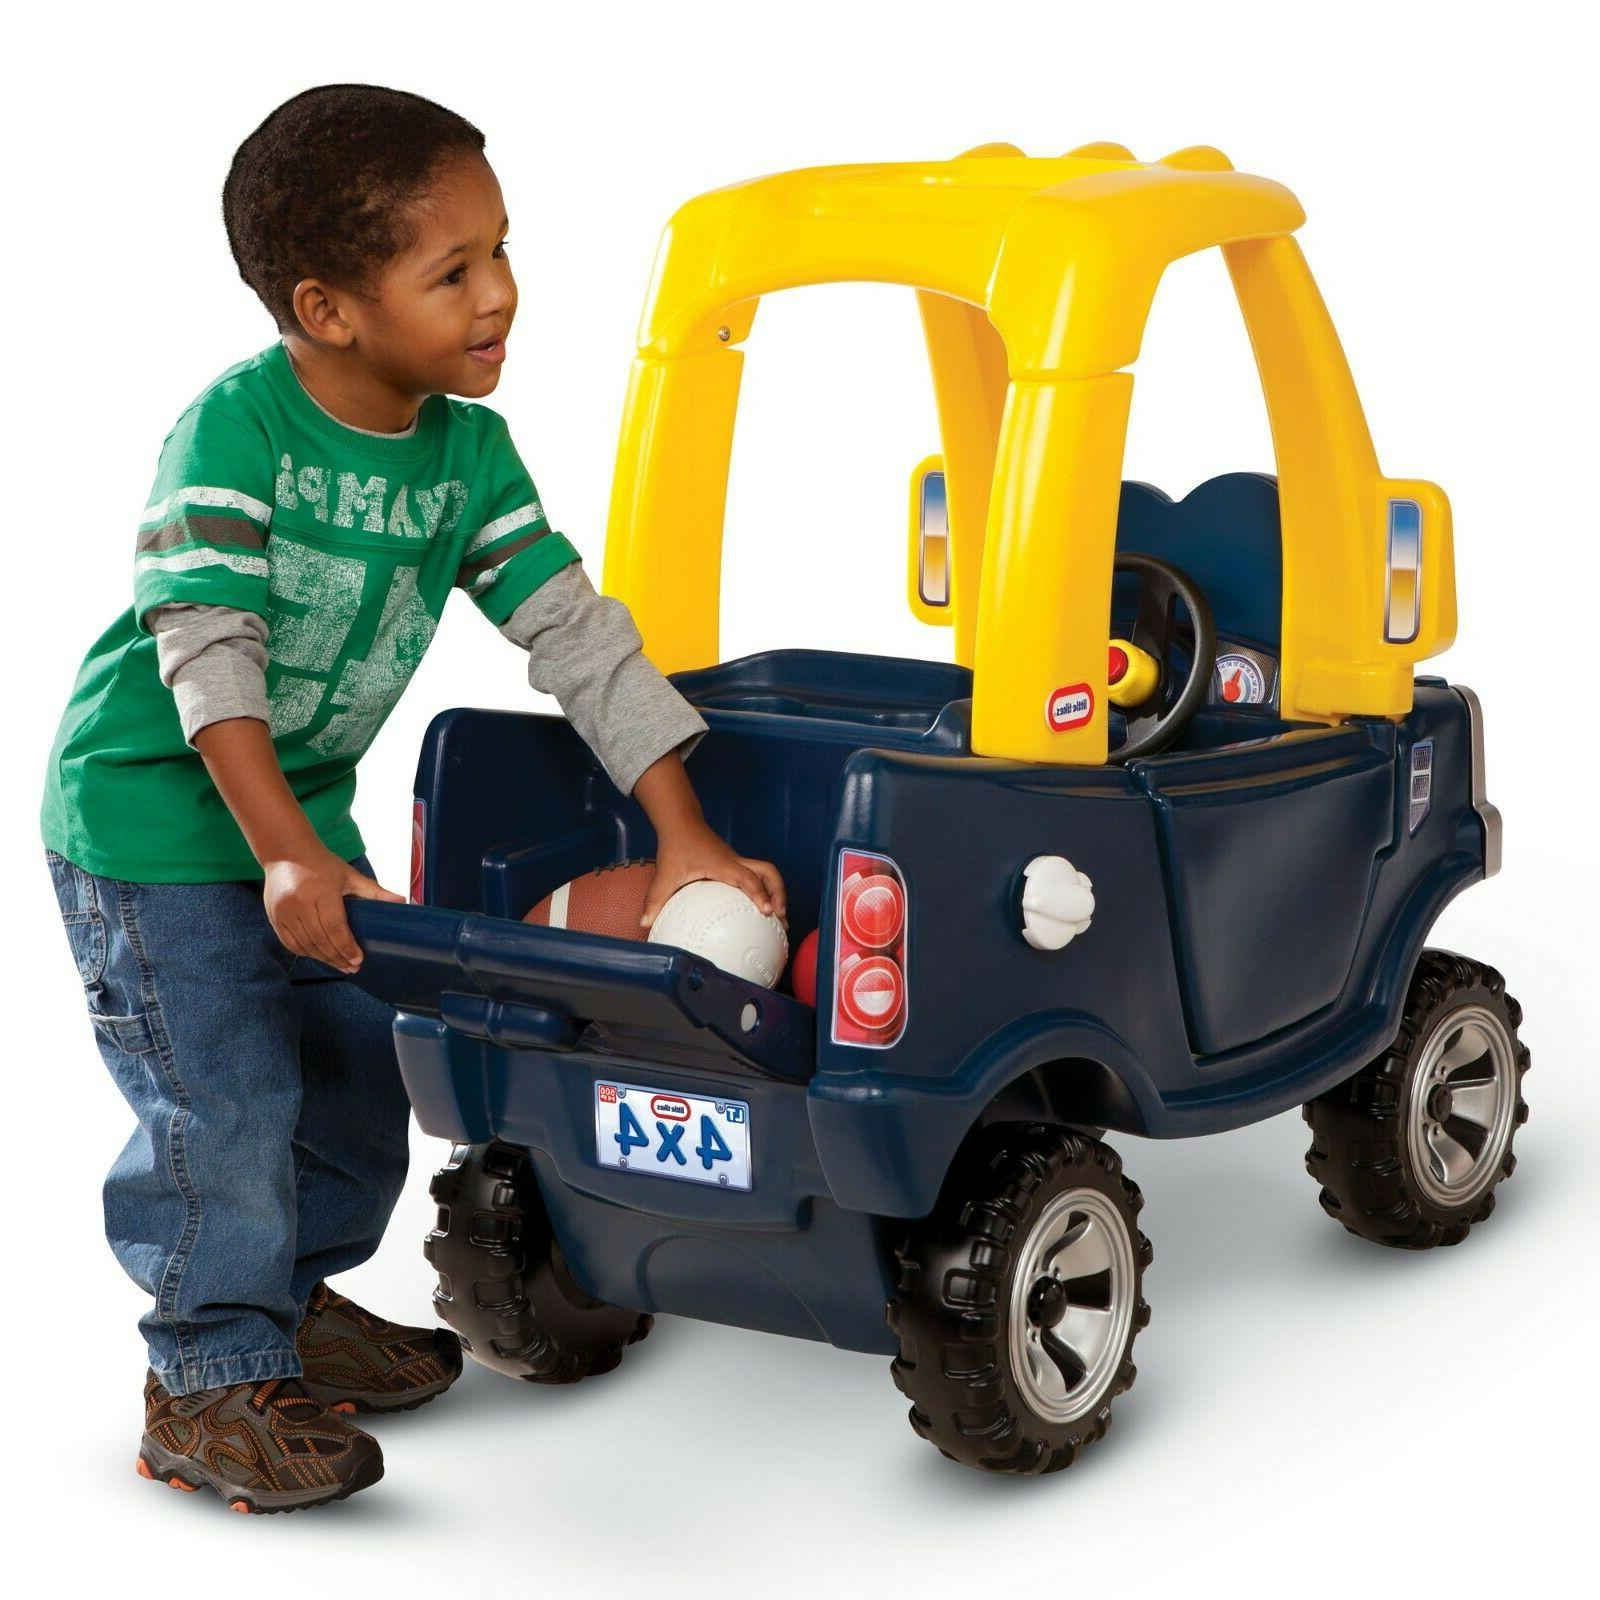 Little Cozy Truck Ride Toy Toddler Play Outdoor Child